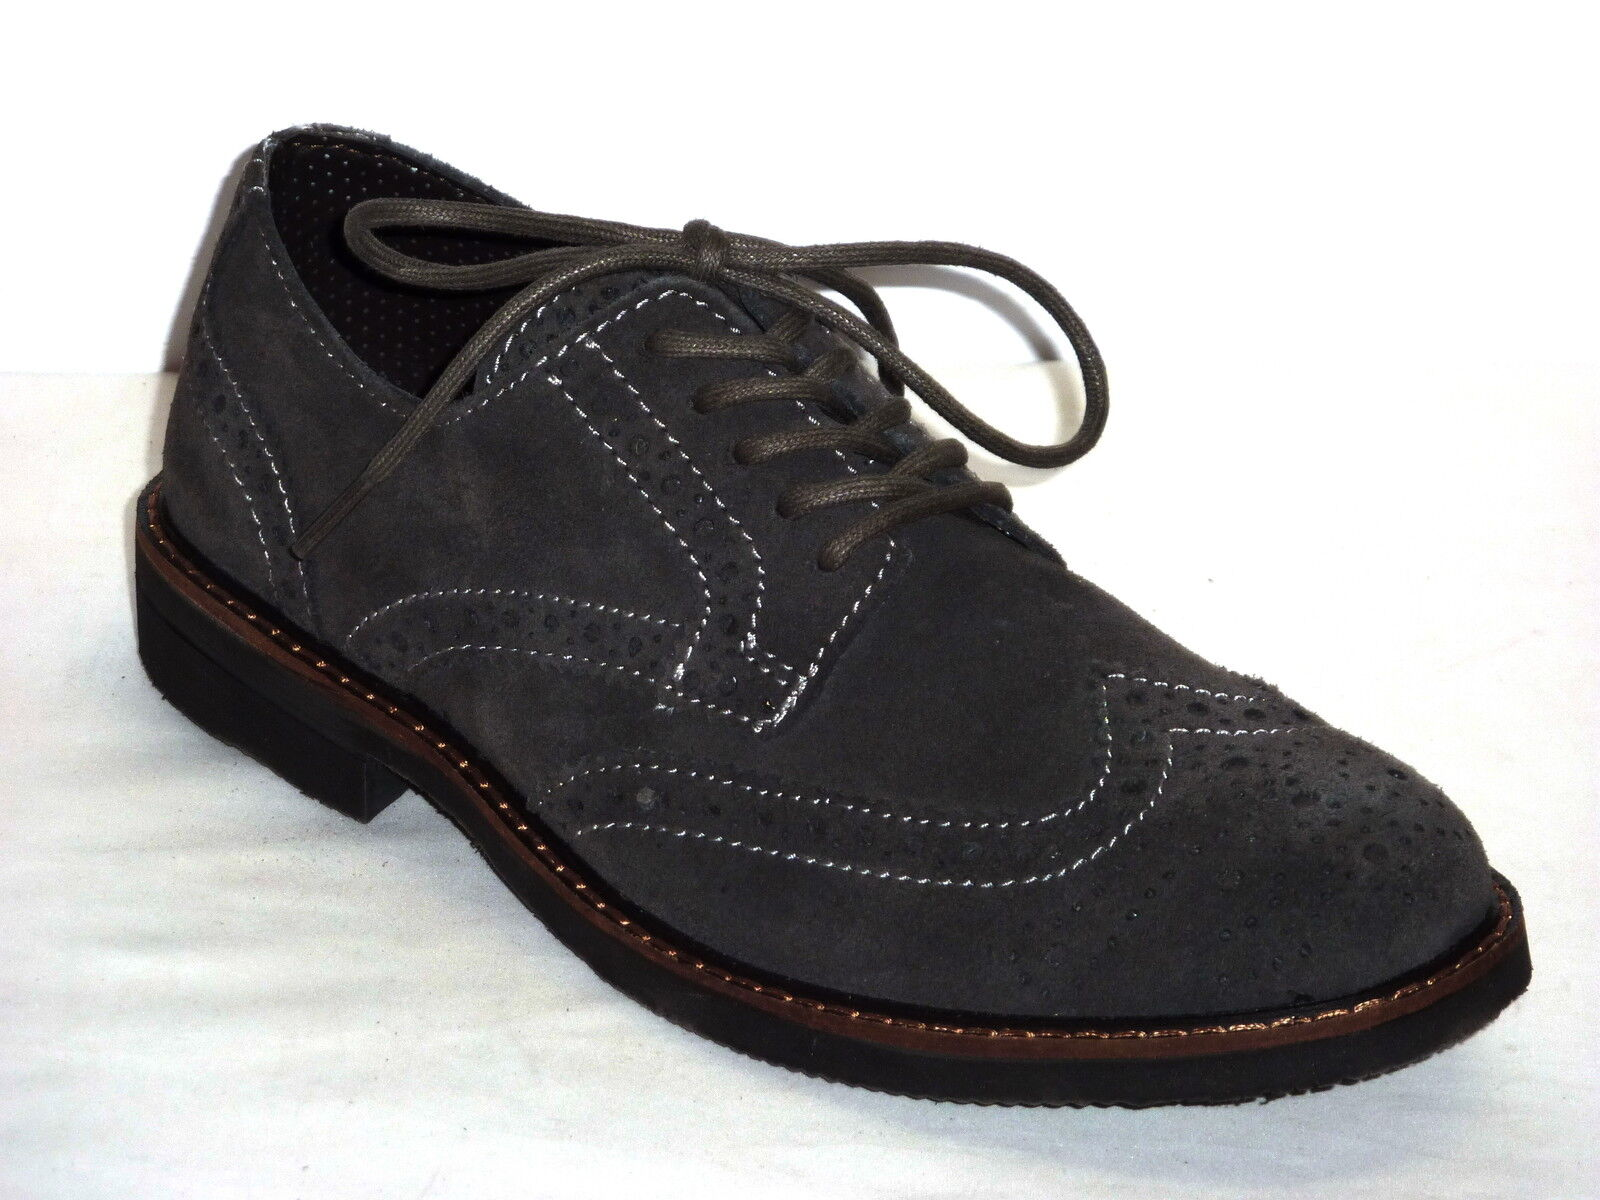 Chaussures hommes INVERNALI CASUAL STILE INGLESE ALLACCIATE NABUK gris PIOMBO n. 39